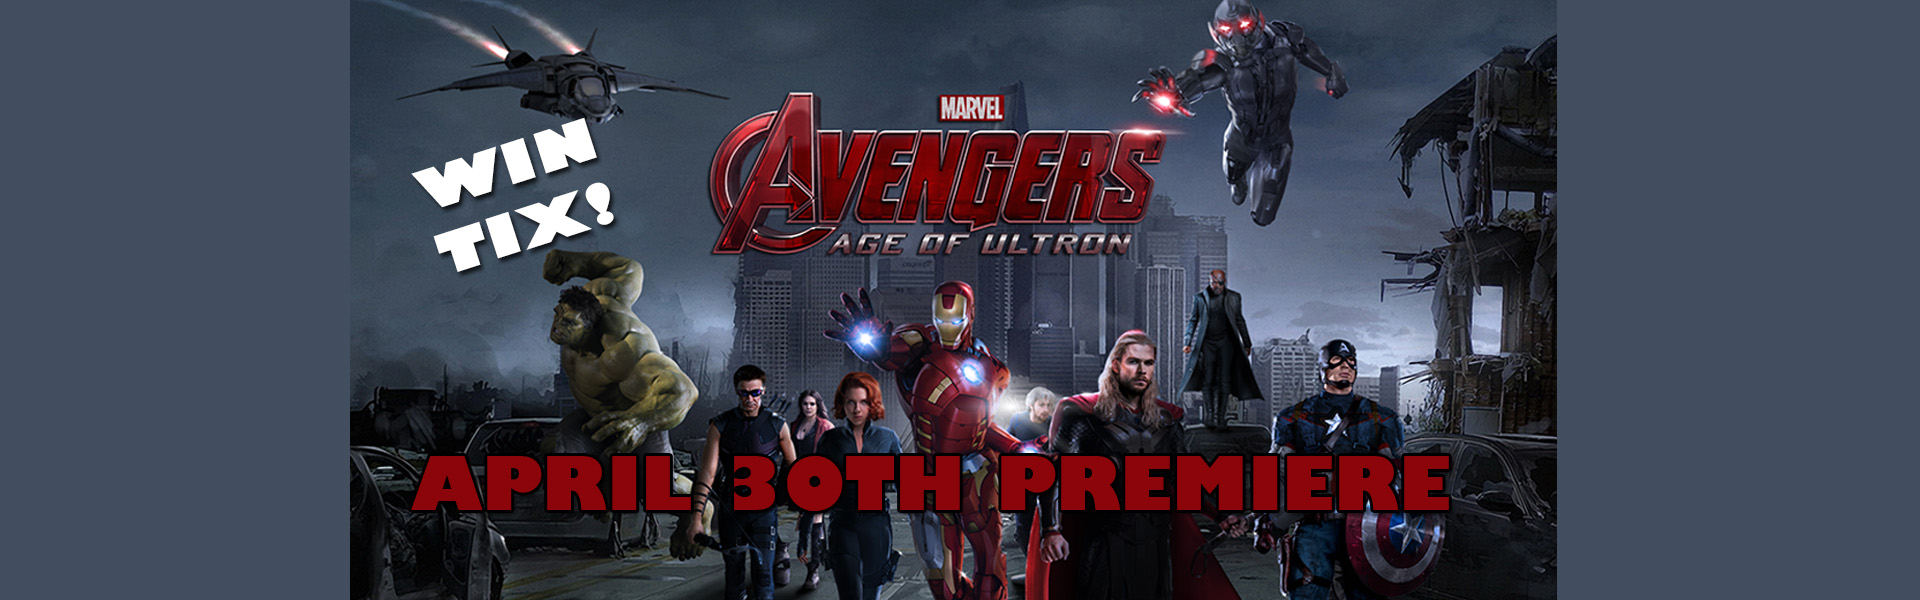 Avengers-premiere-homepage